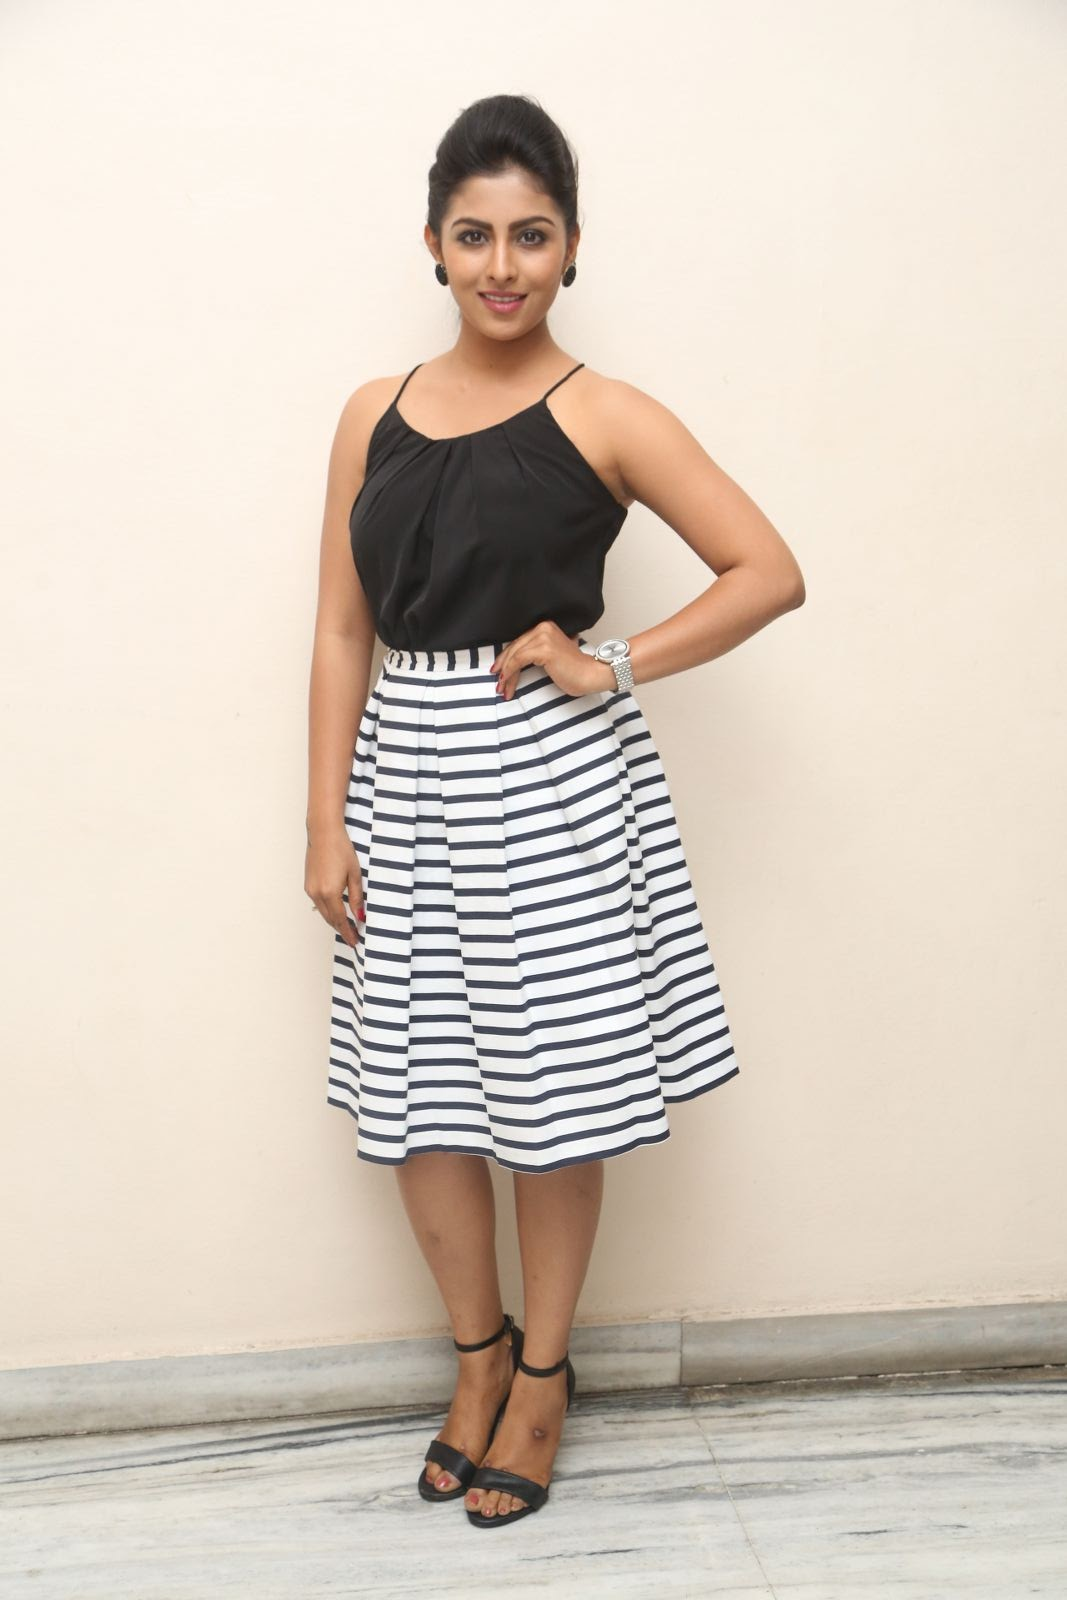 kruthika jayakumar new photos-HQ-Photo-1